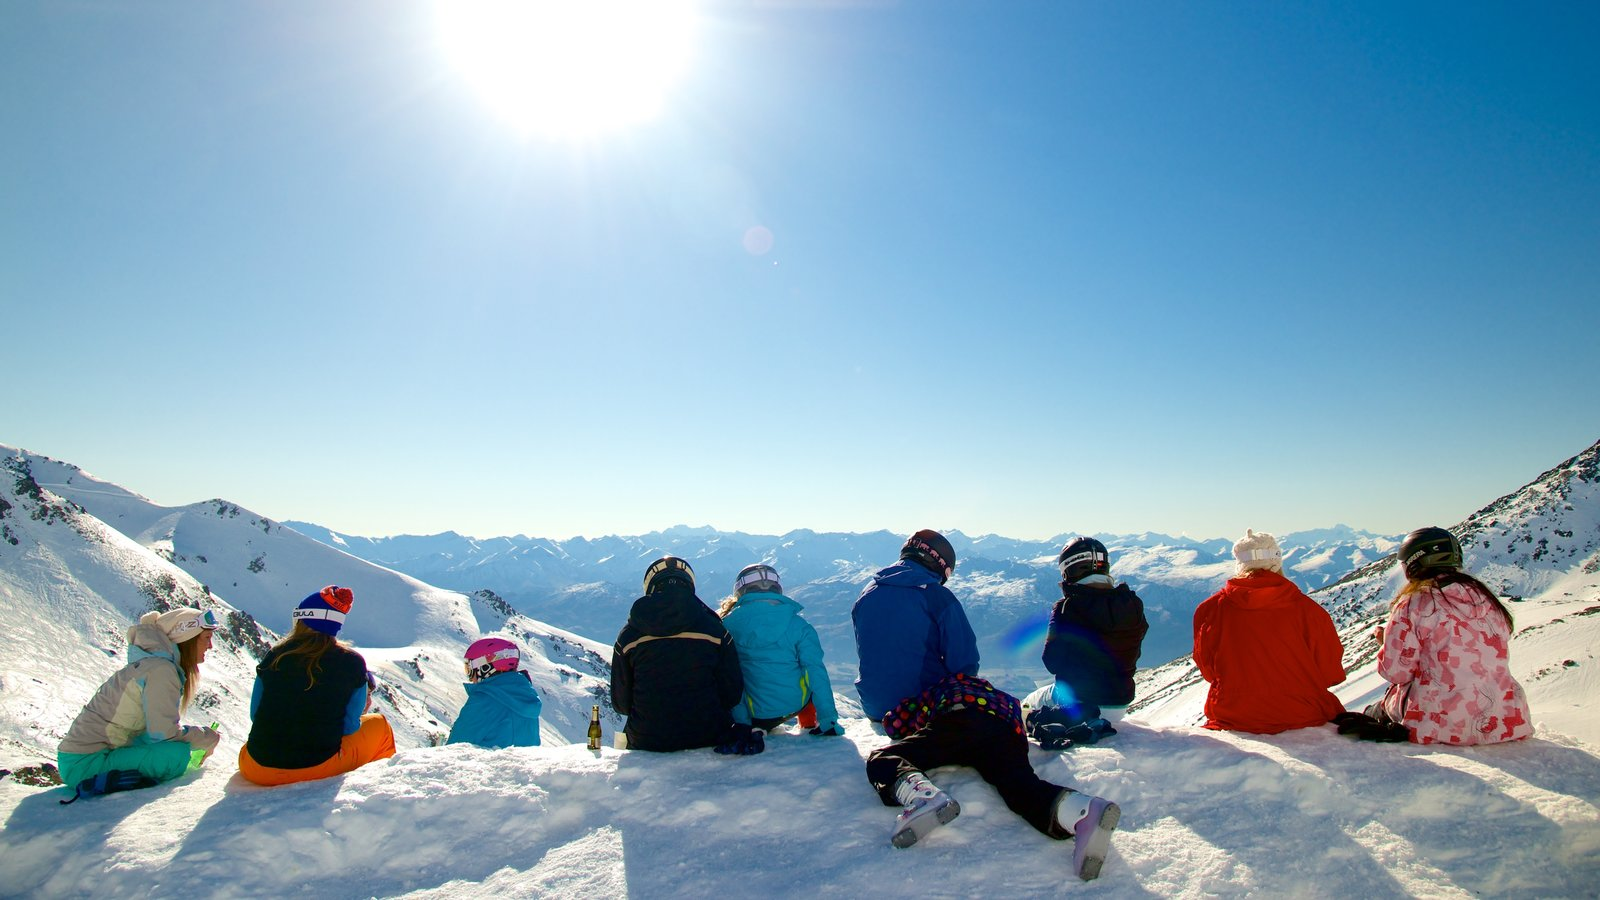 The Remarkables Ski Area which includes snow as well as a small group of people